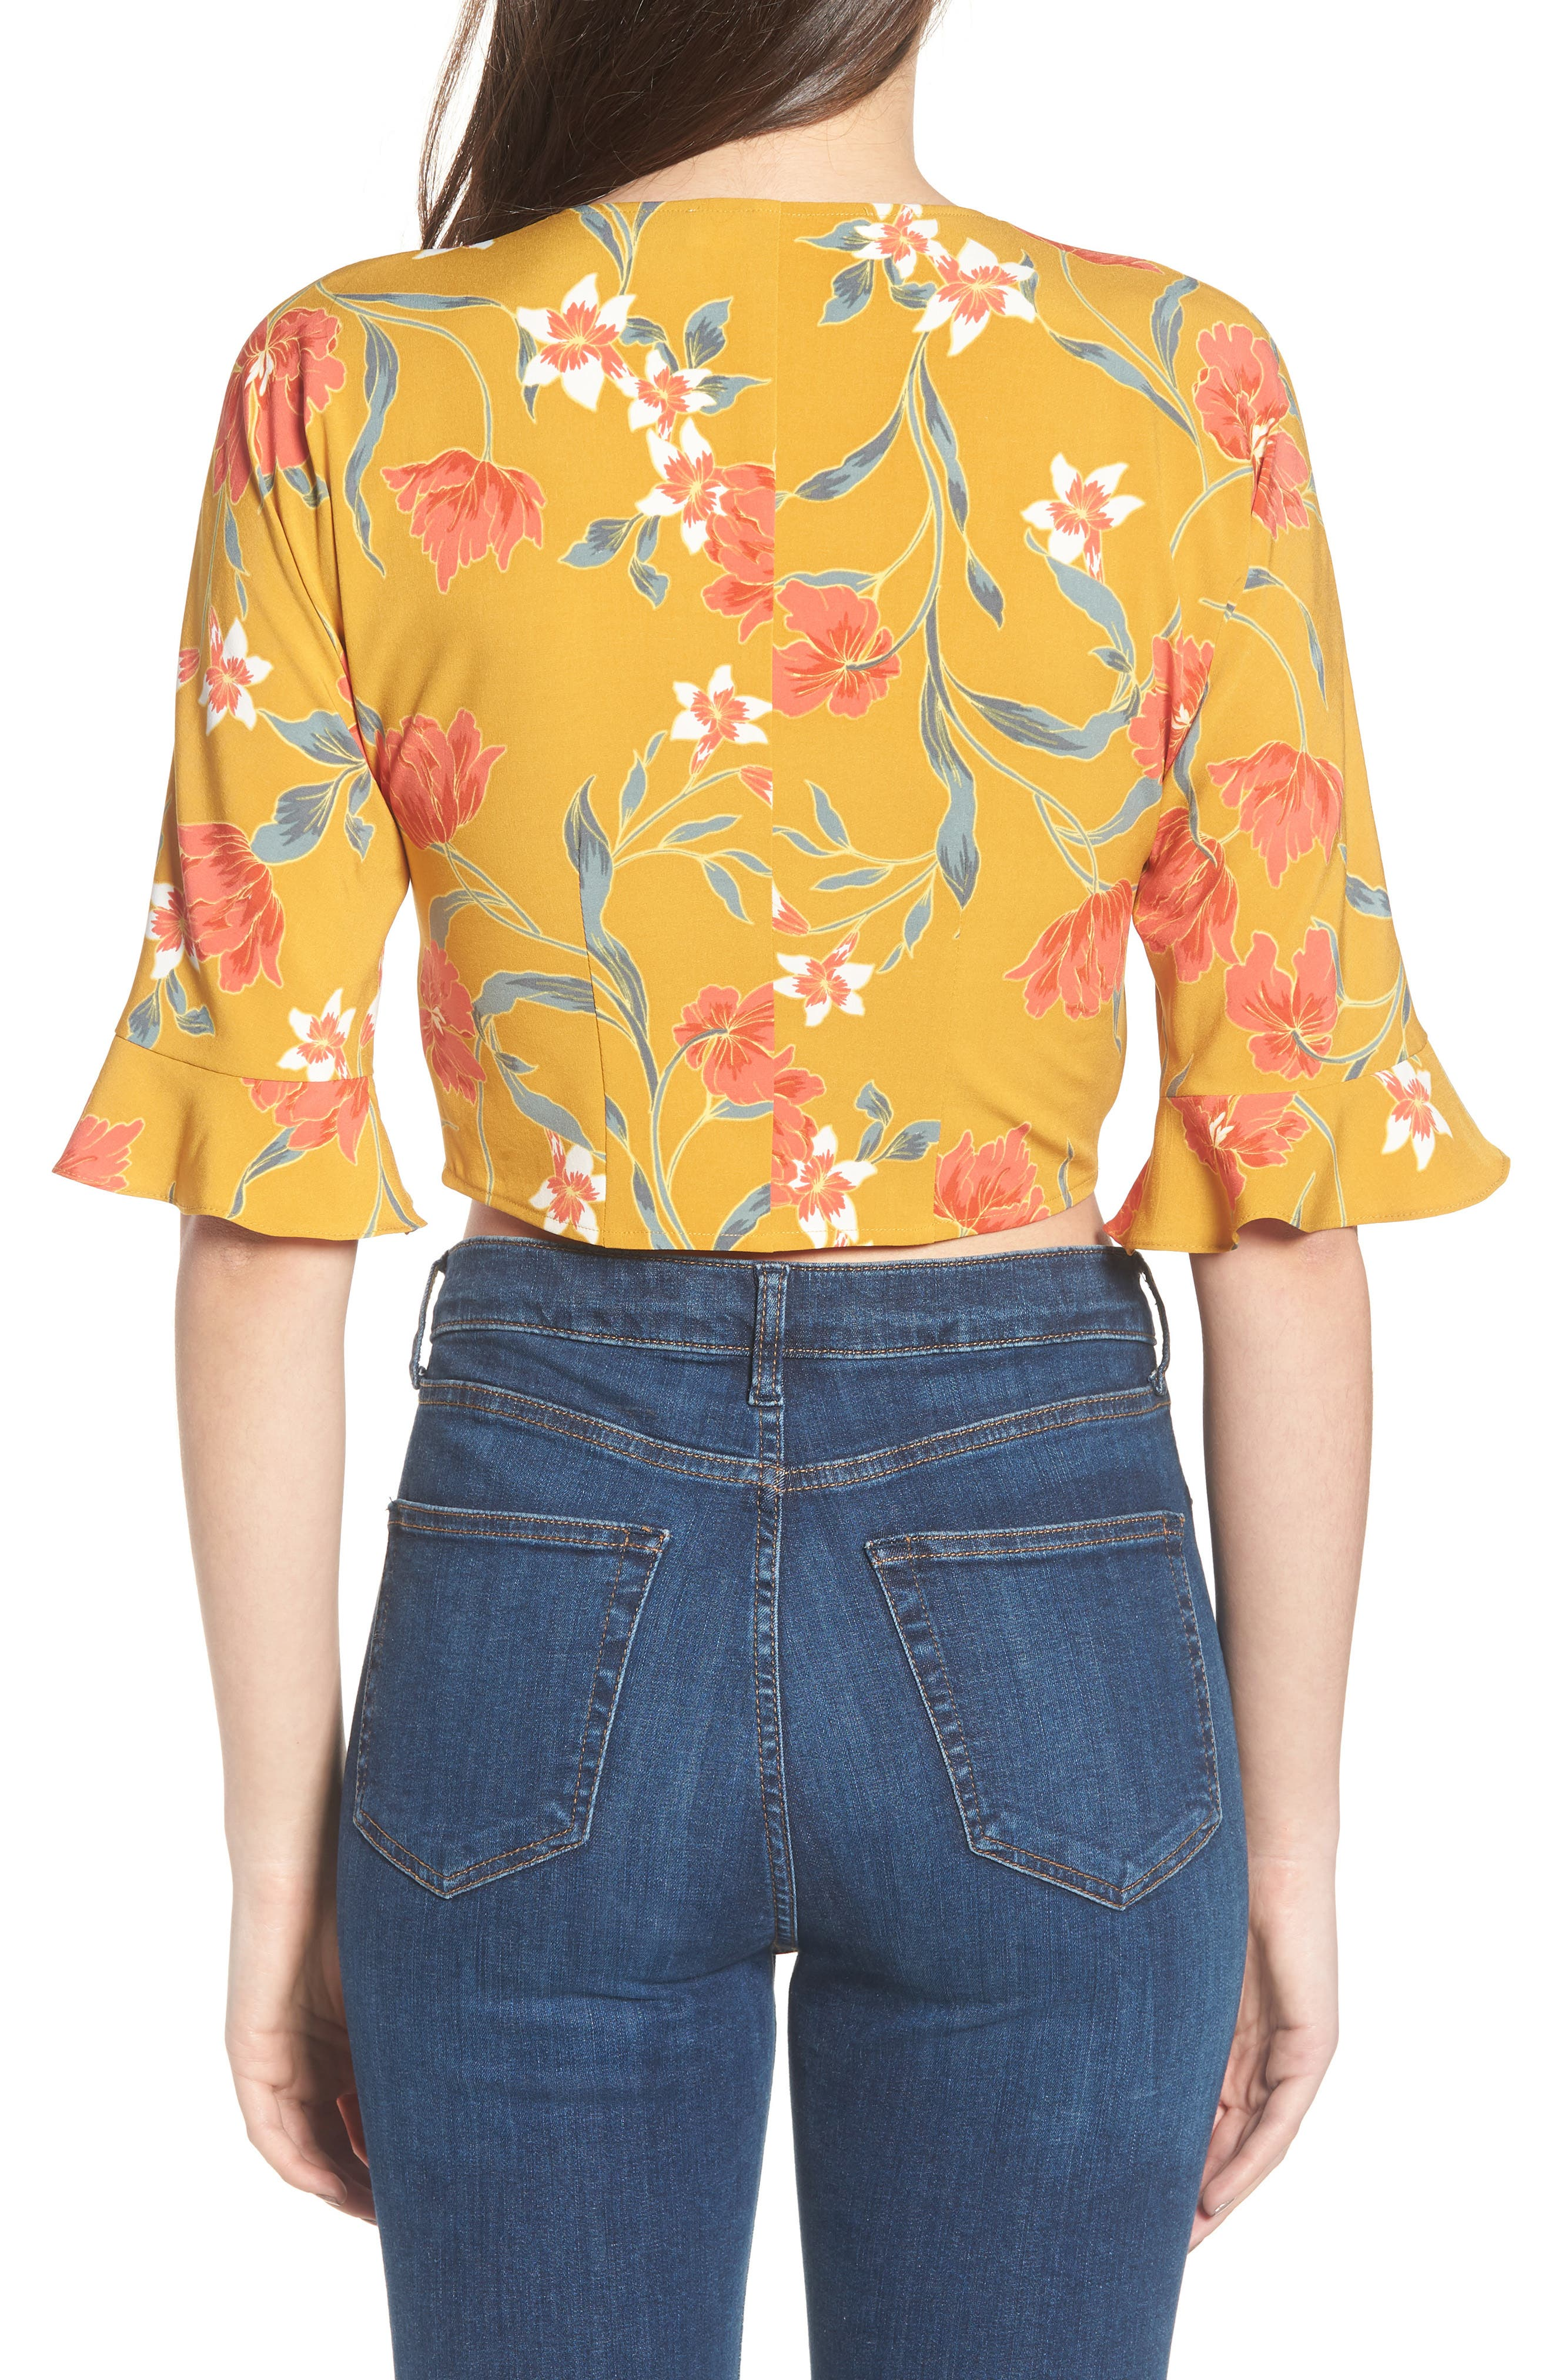 Tie Front Crop Top,                             Alternate thumbnail 2, color,                             Mustard Multi Floral